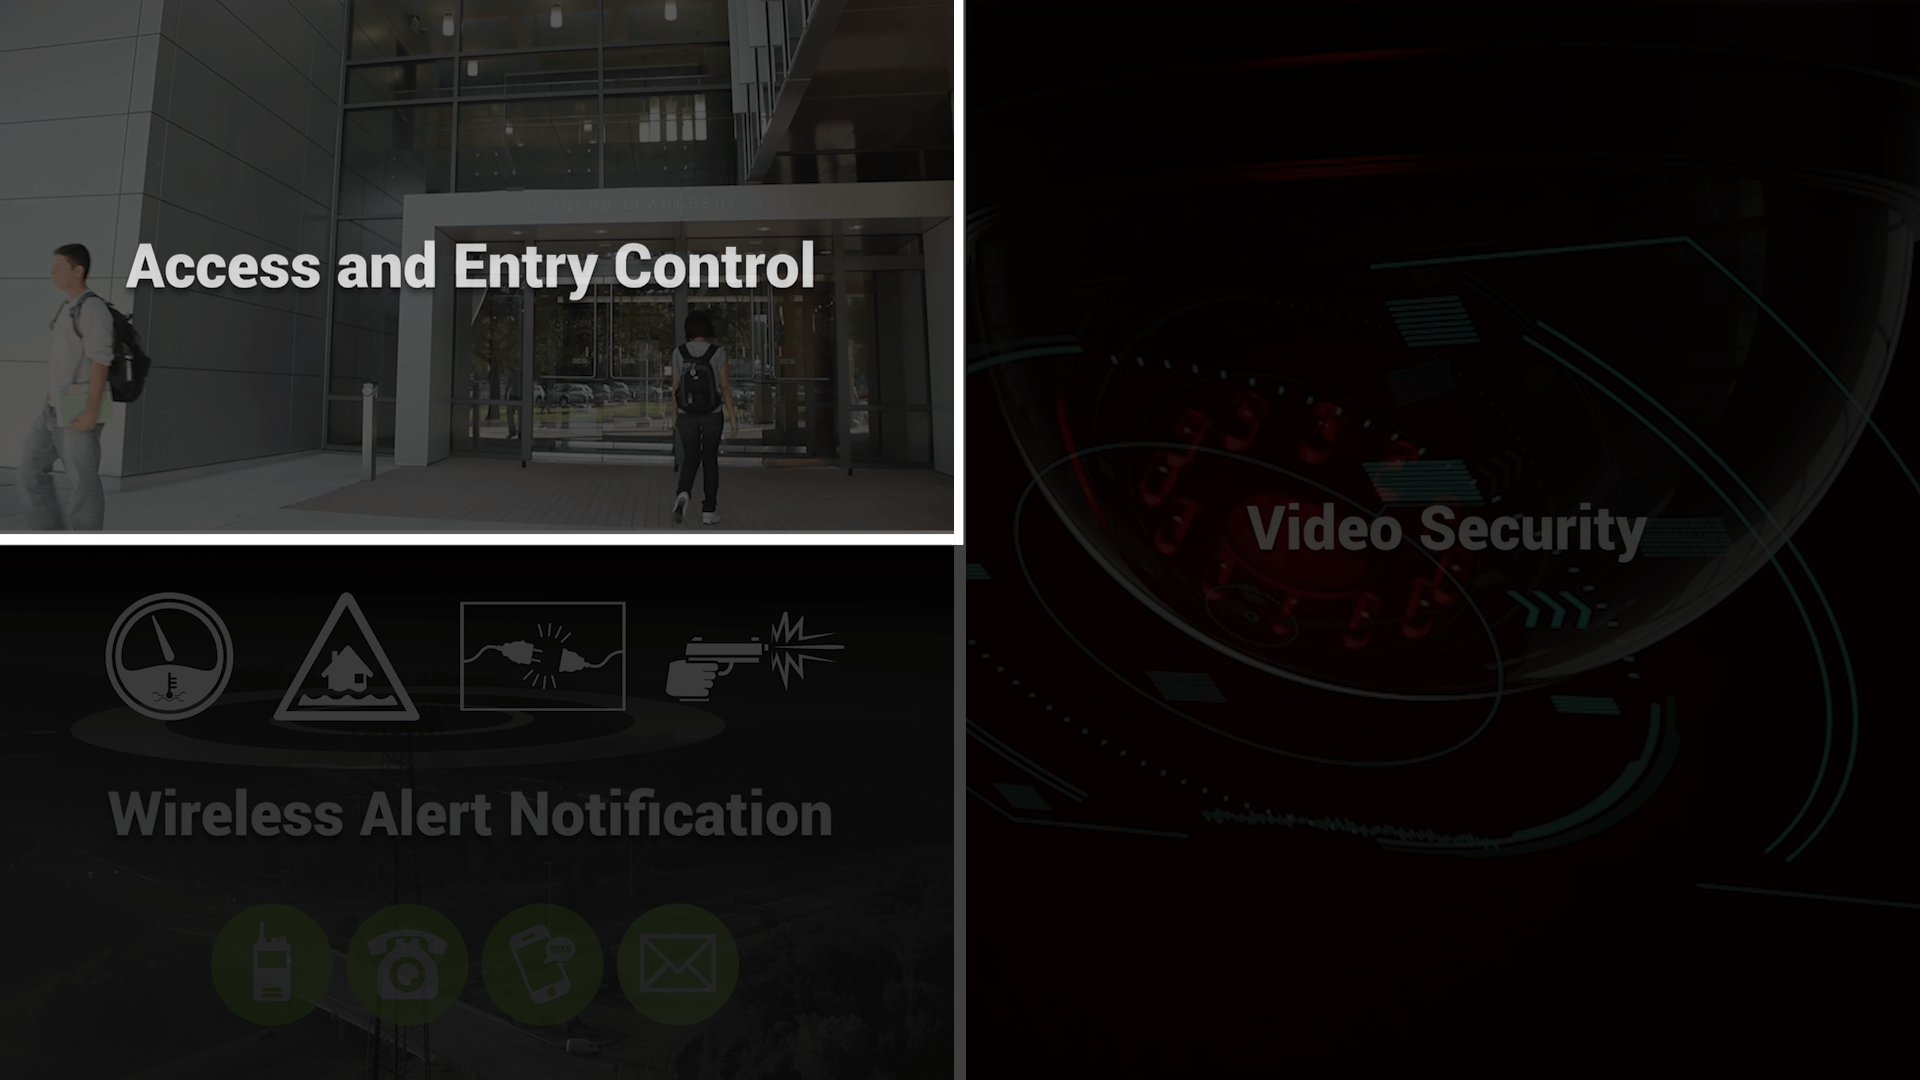 Access and Entry Control